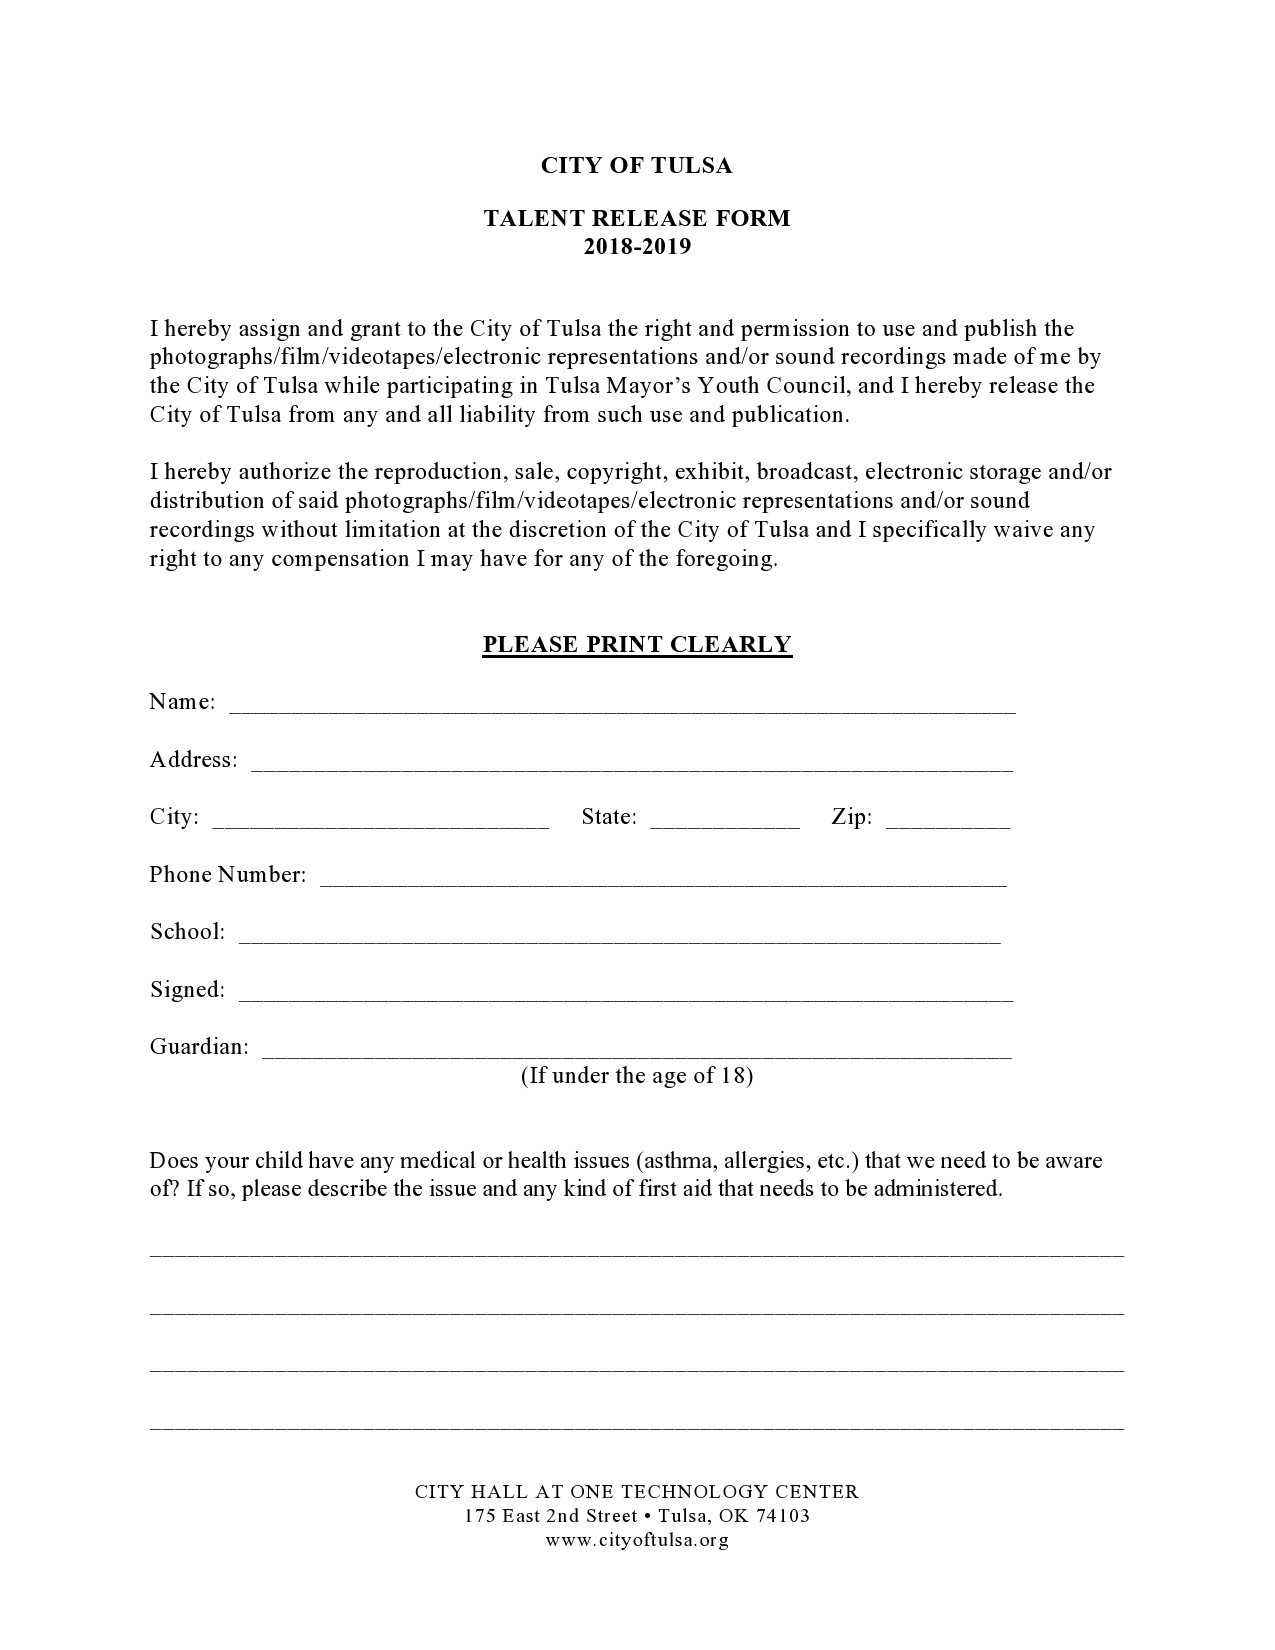 Free talent release form 16